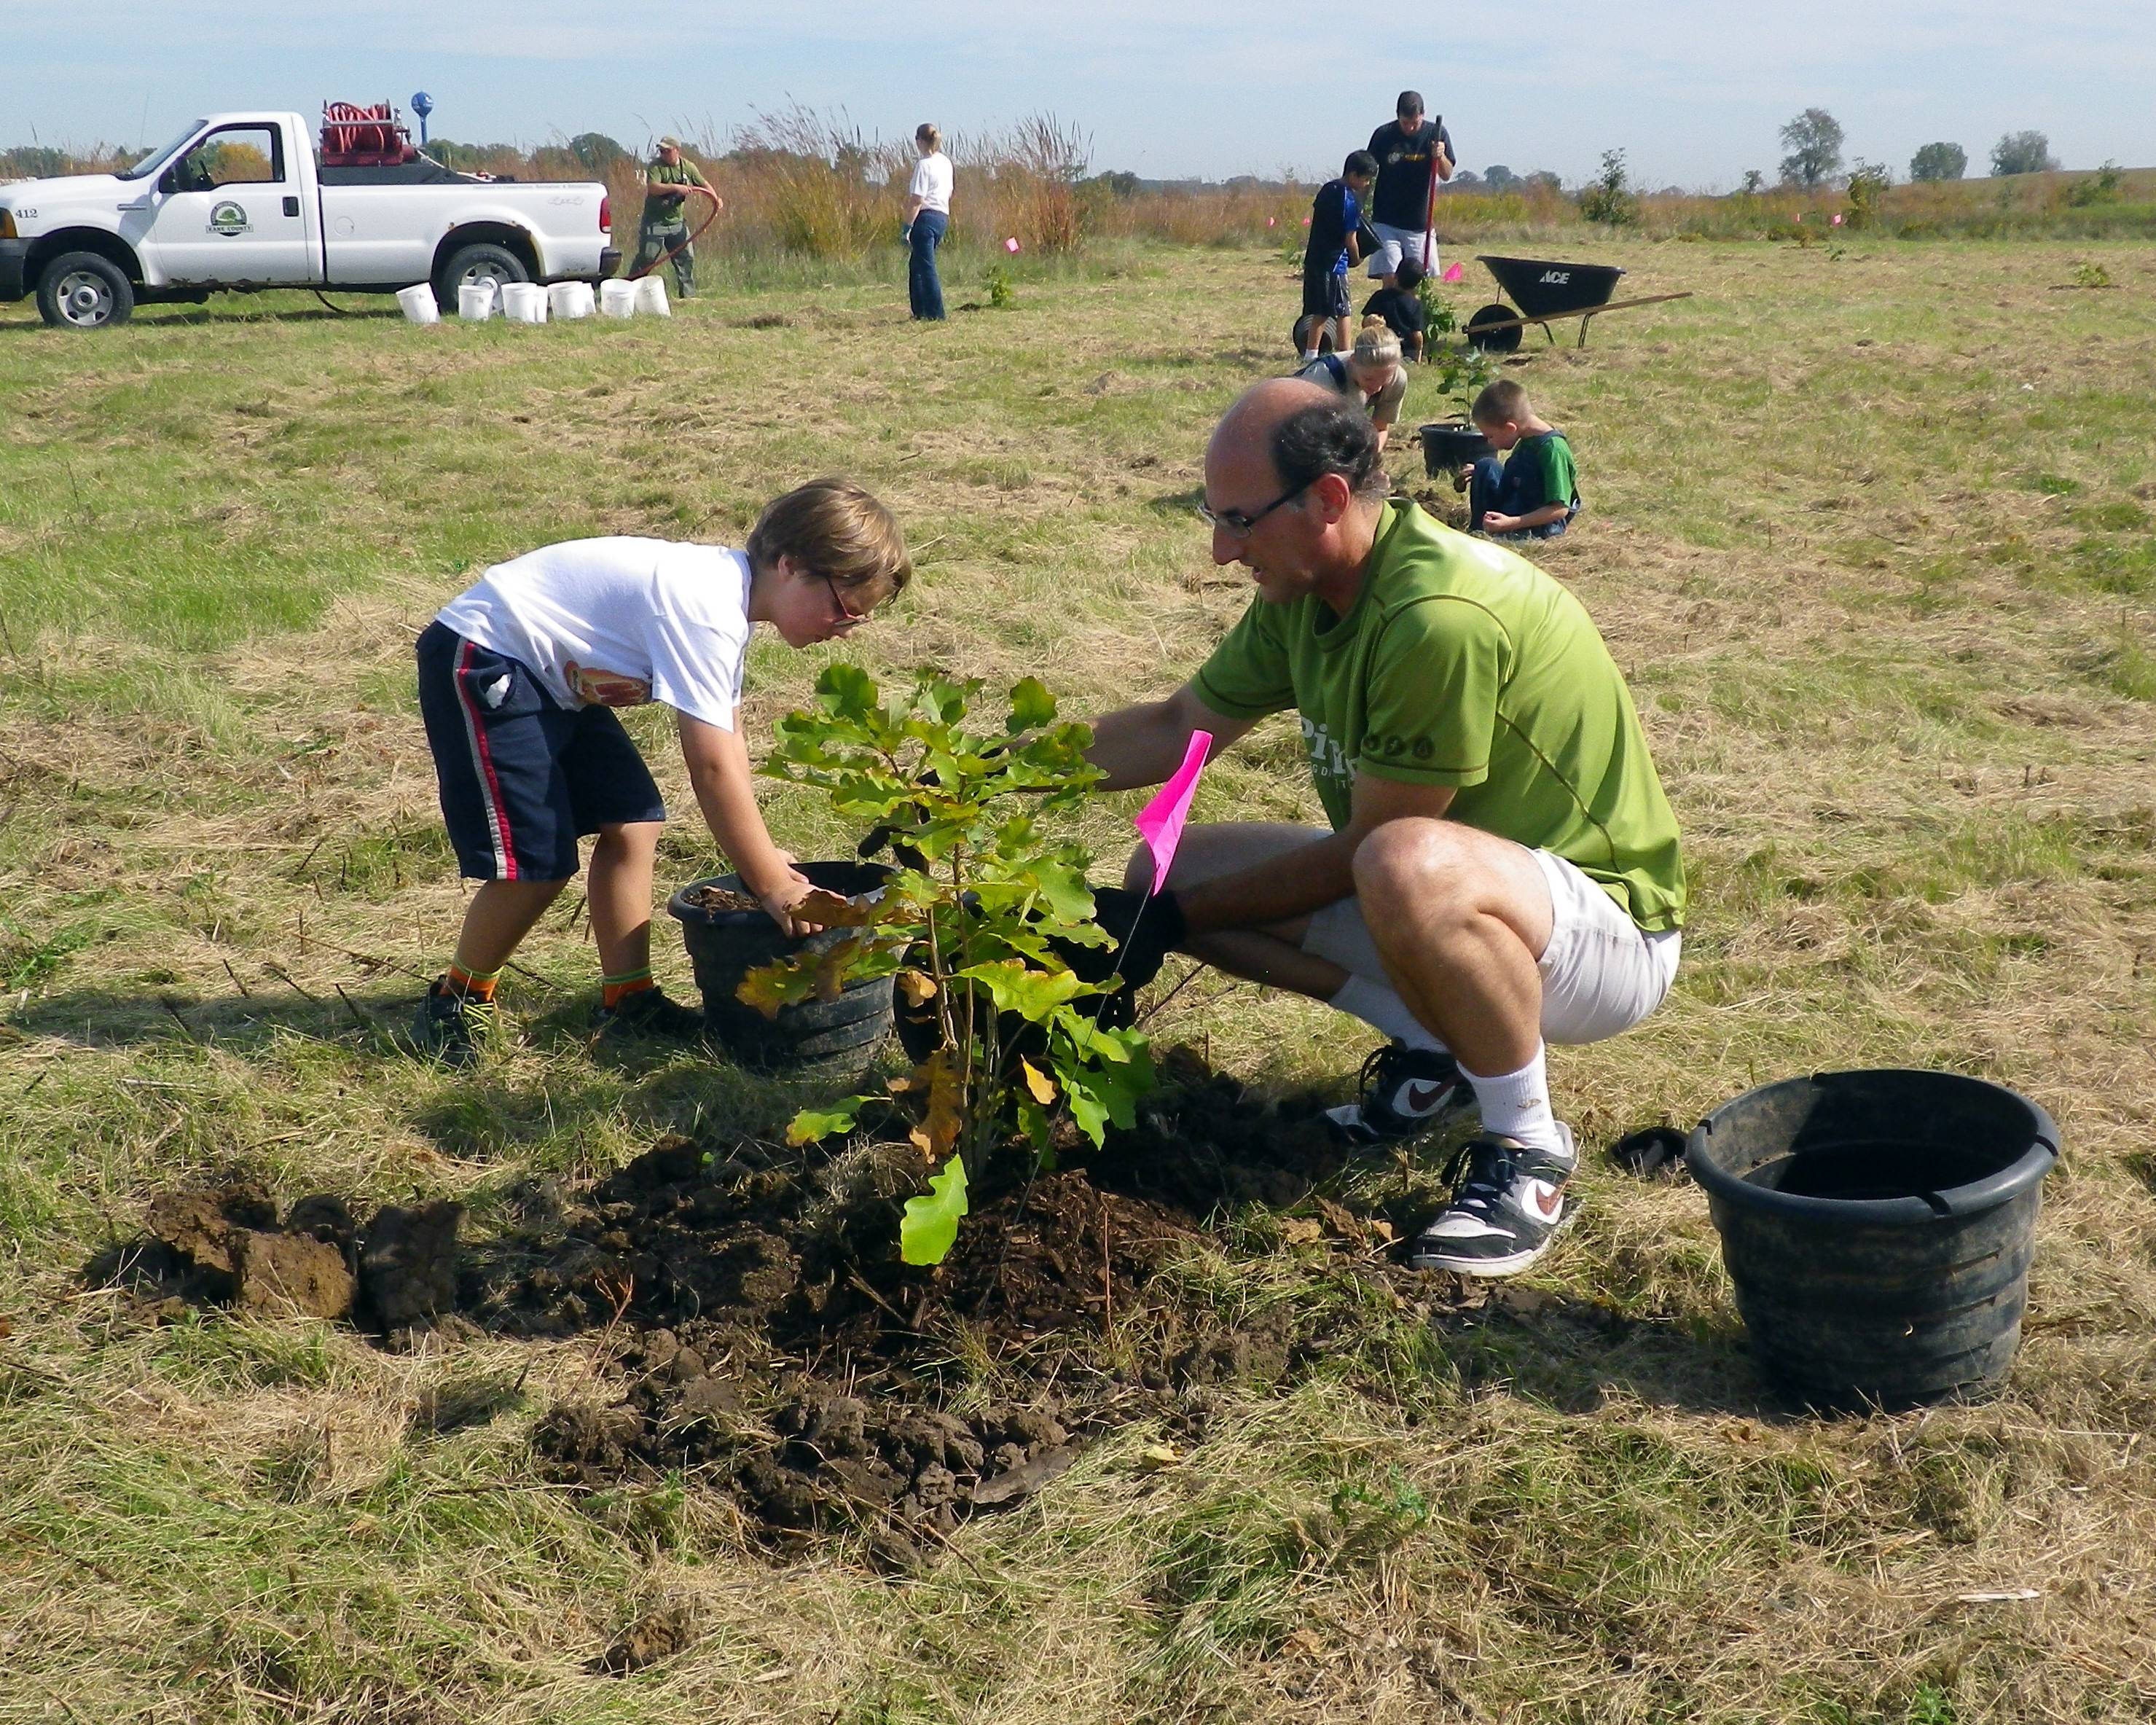 Volunteers can plant trees with the Forest Preserve District of Kane County at Earth Day activities on Saturday, April 22.